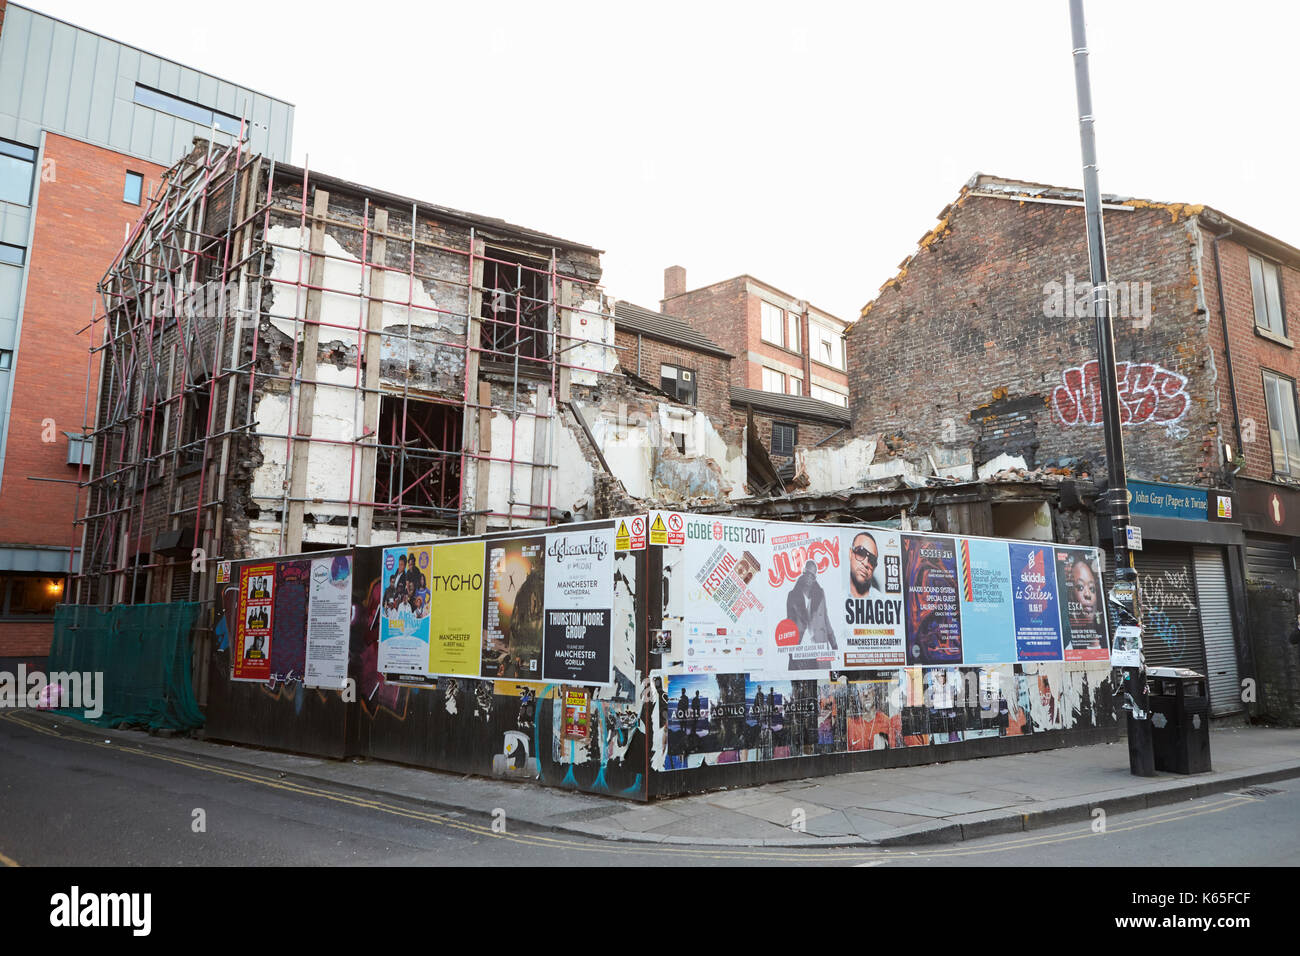 Manchester, UK - 10 May 2017: Building Being Demolished In Manchester City Centre - Stock Image